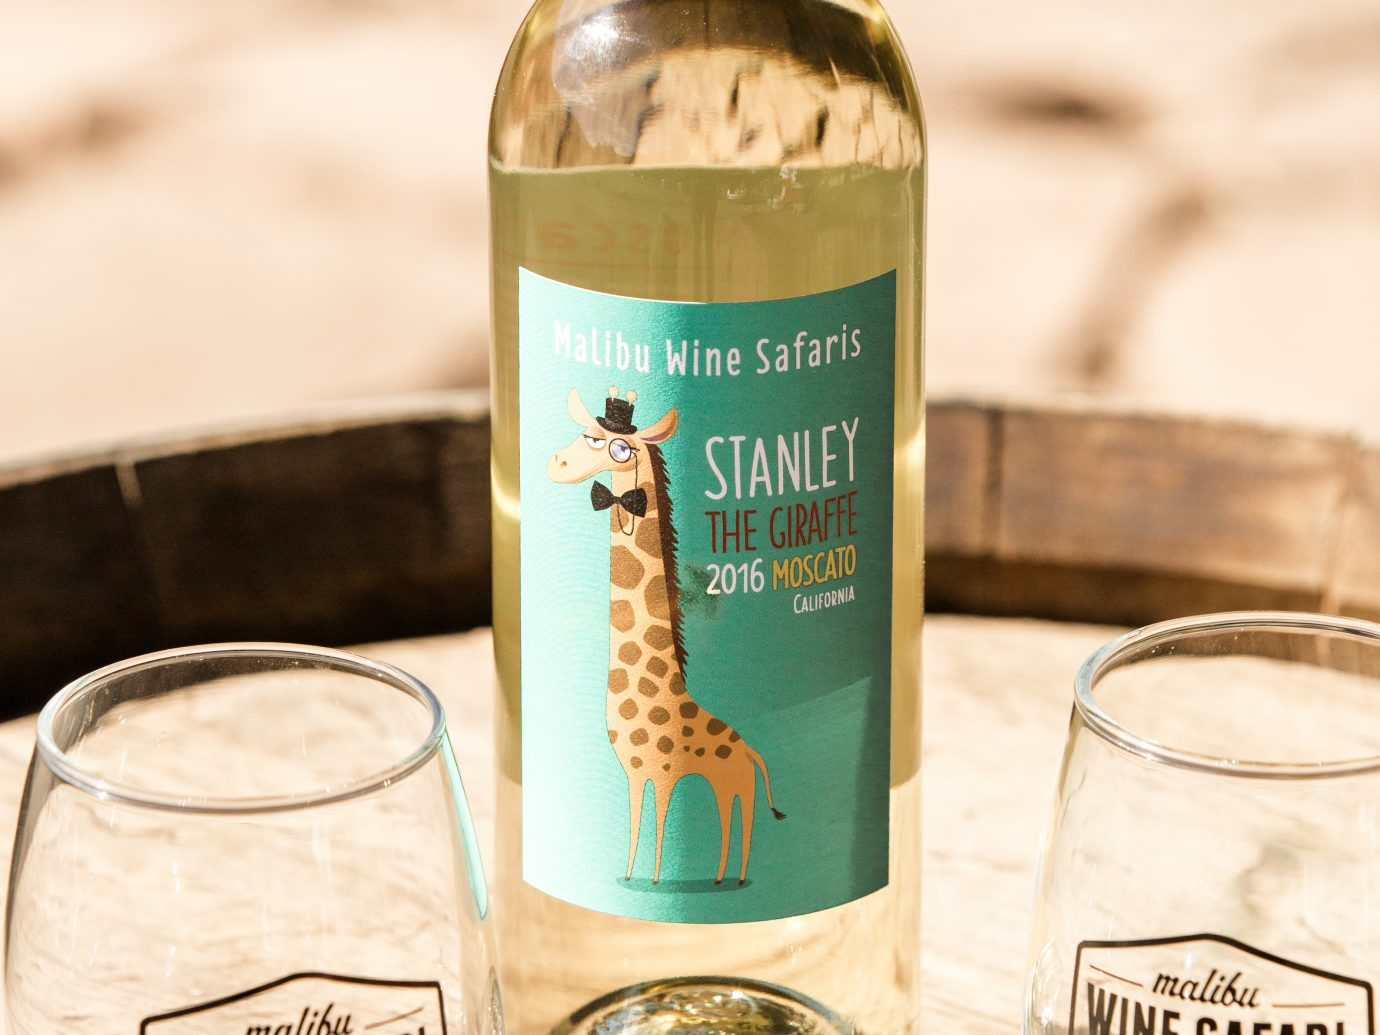 Giraffe labeled wine